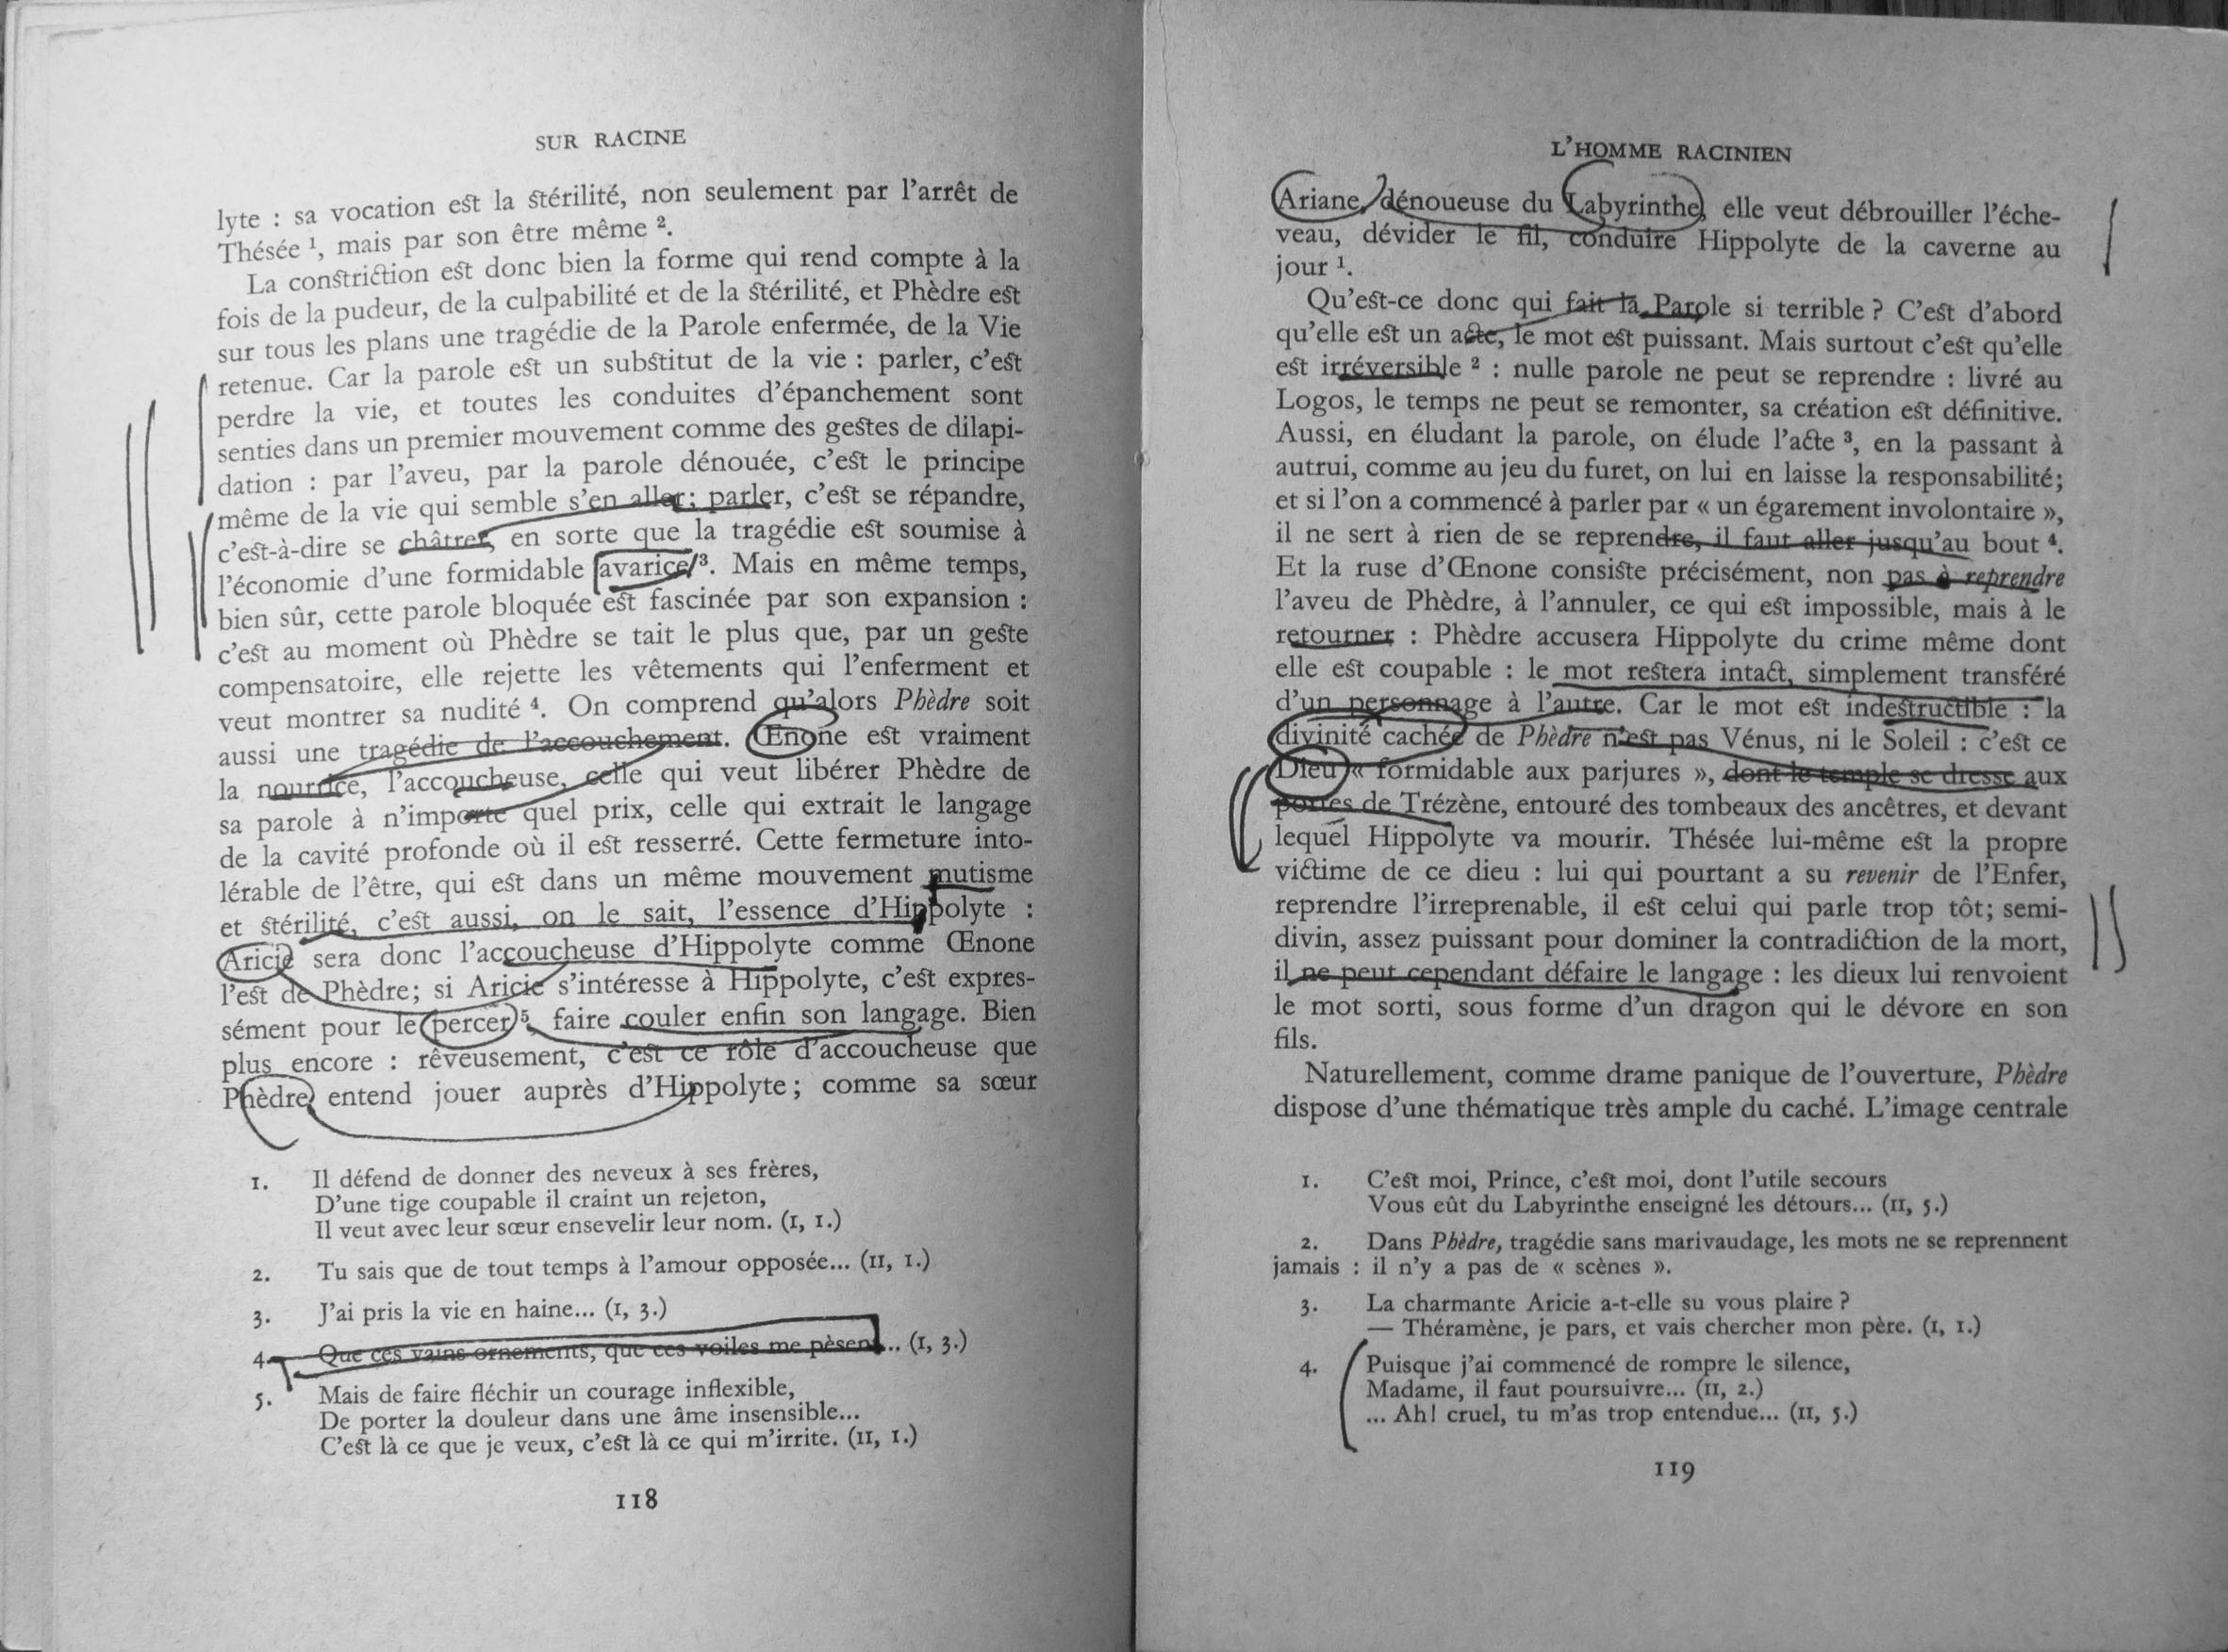 Derrida's annotations on a page from Sur Racine by Roland Barthes (Paris: Editions du Seuil, 1963).